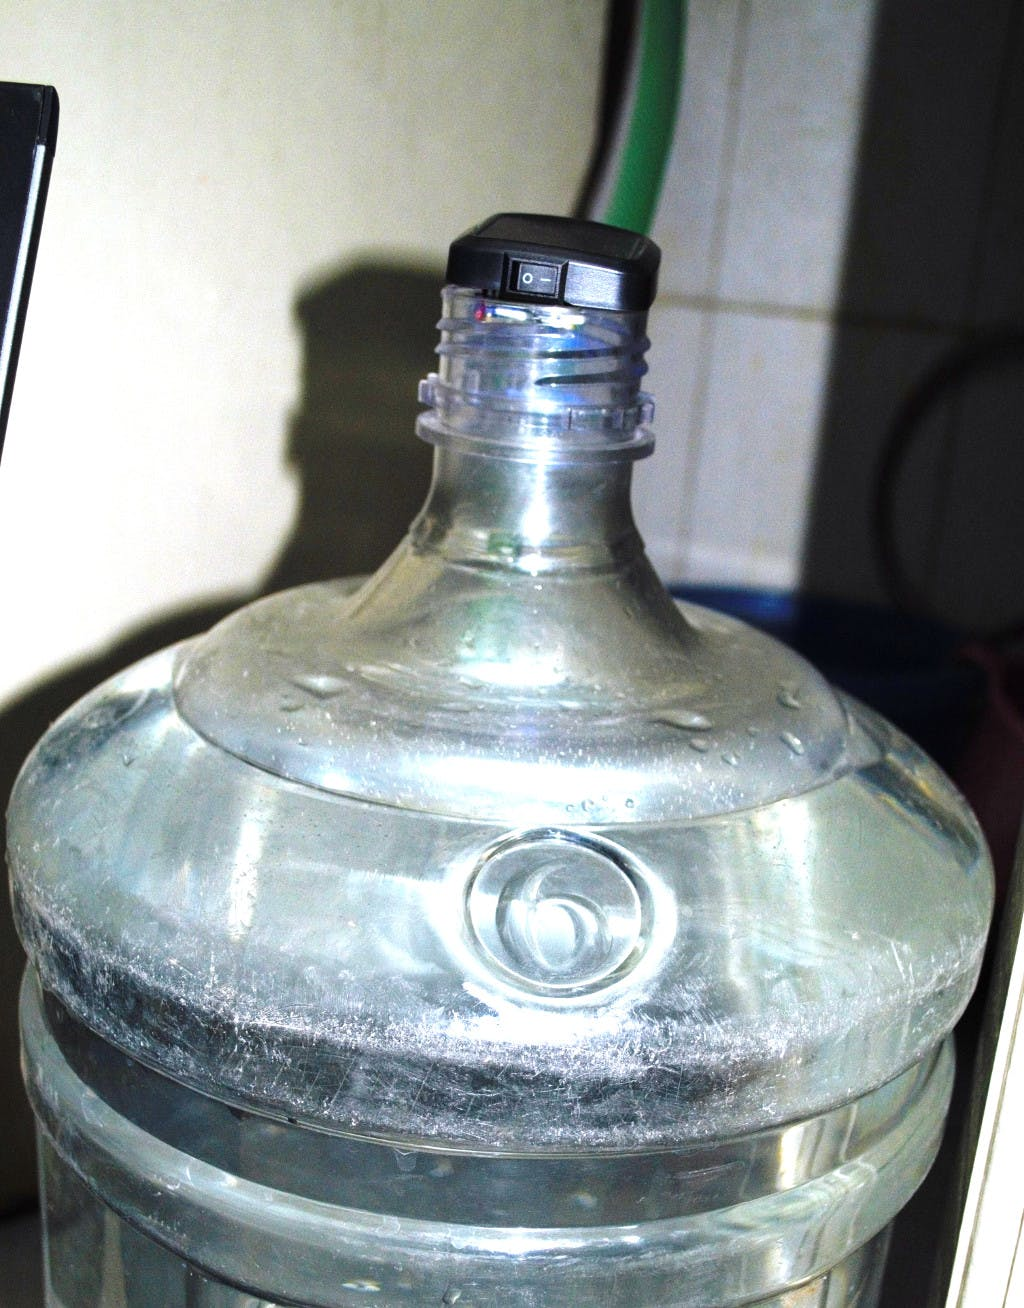 Sensor unit mounted on top of the tank (in this case, a can filled with water)